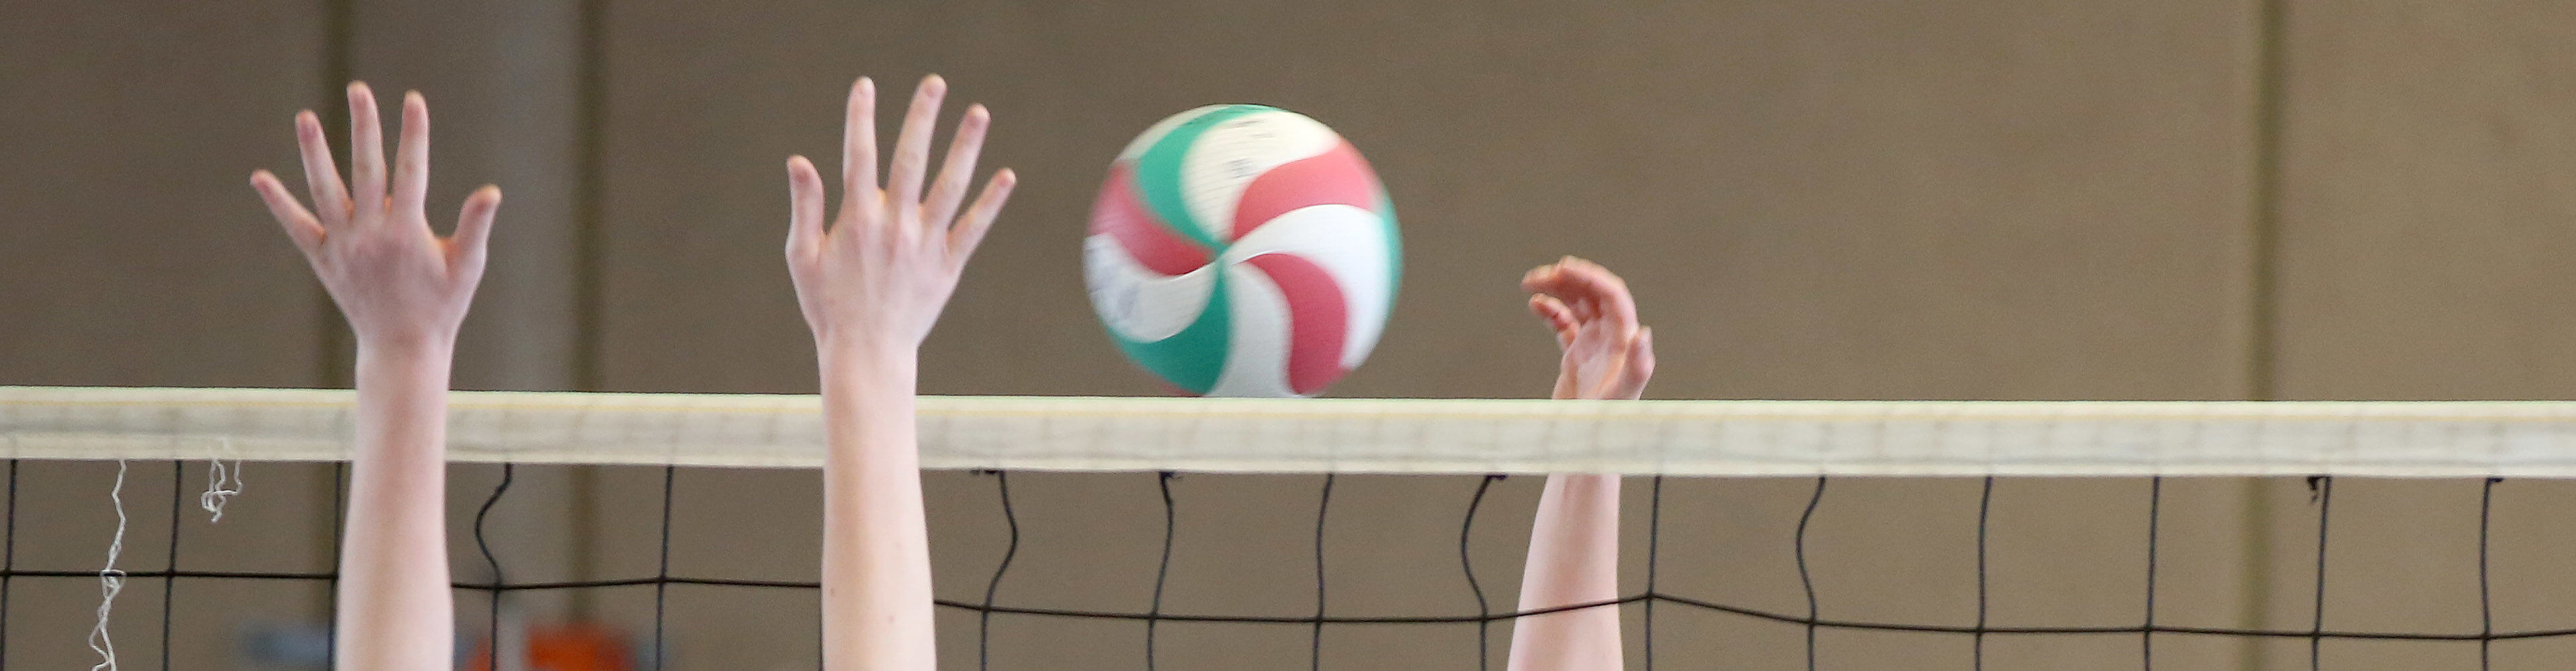 Volleyball-aspect-ratio-1920x500